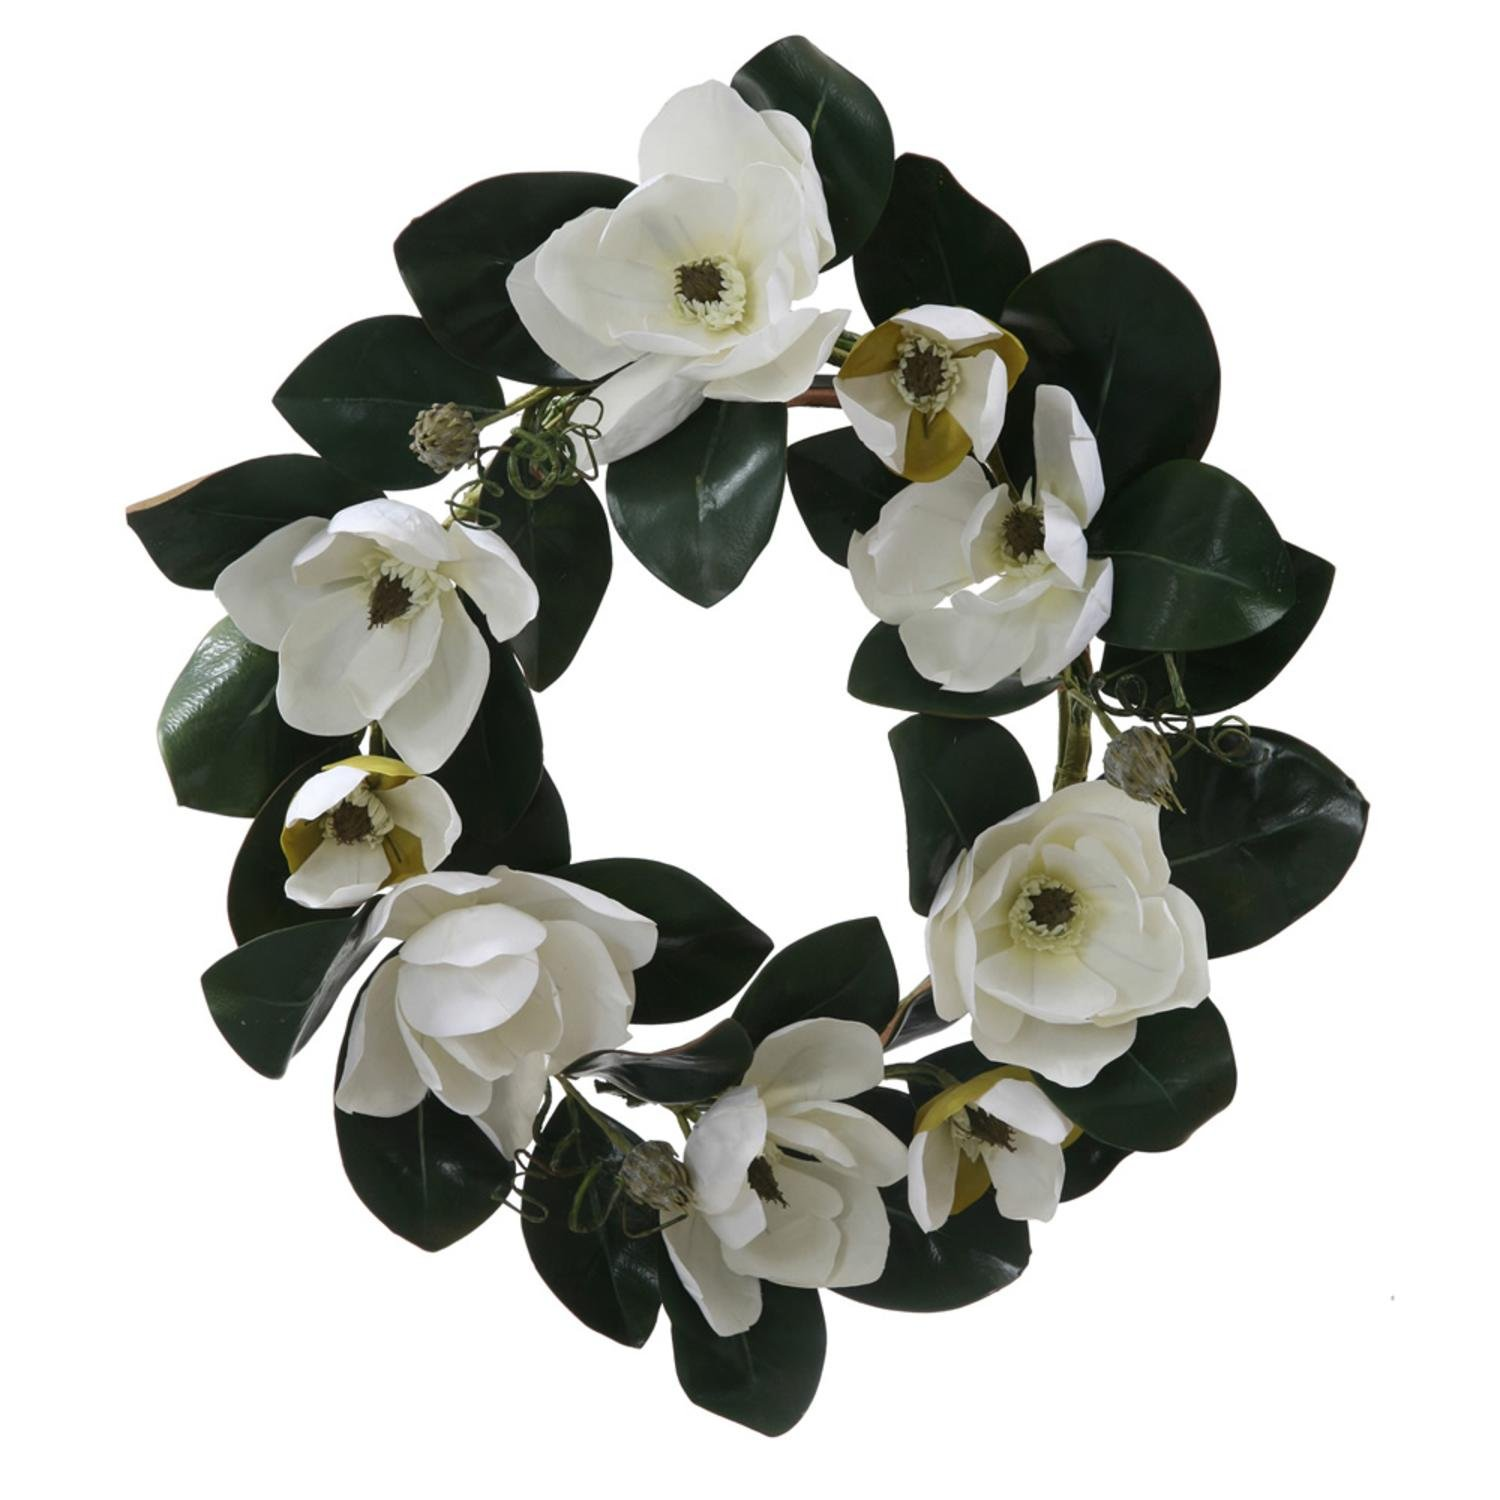 Amazon 26 white magnolia flower and leaves artificial silk amazon 26 white magnolia flower and leaves artificial silk floral wreath unlit home kitchen mightylinksfo Images